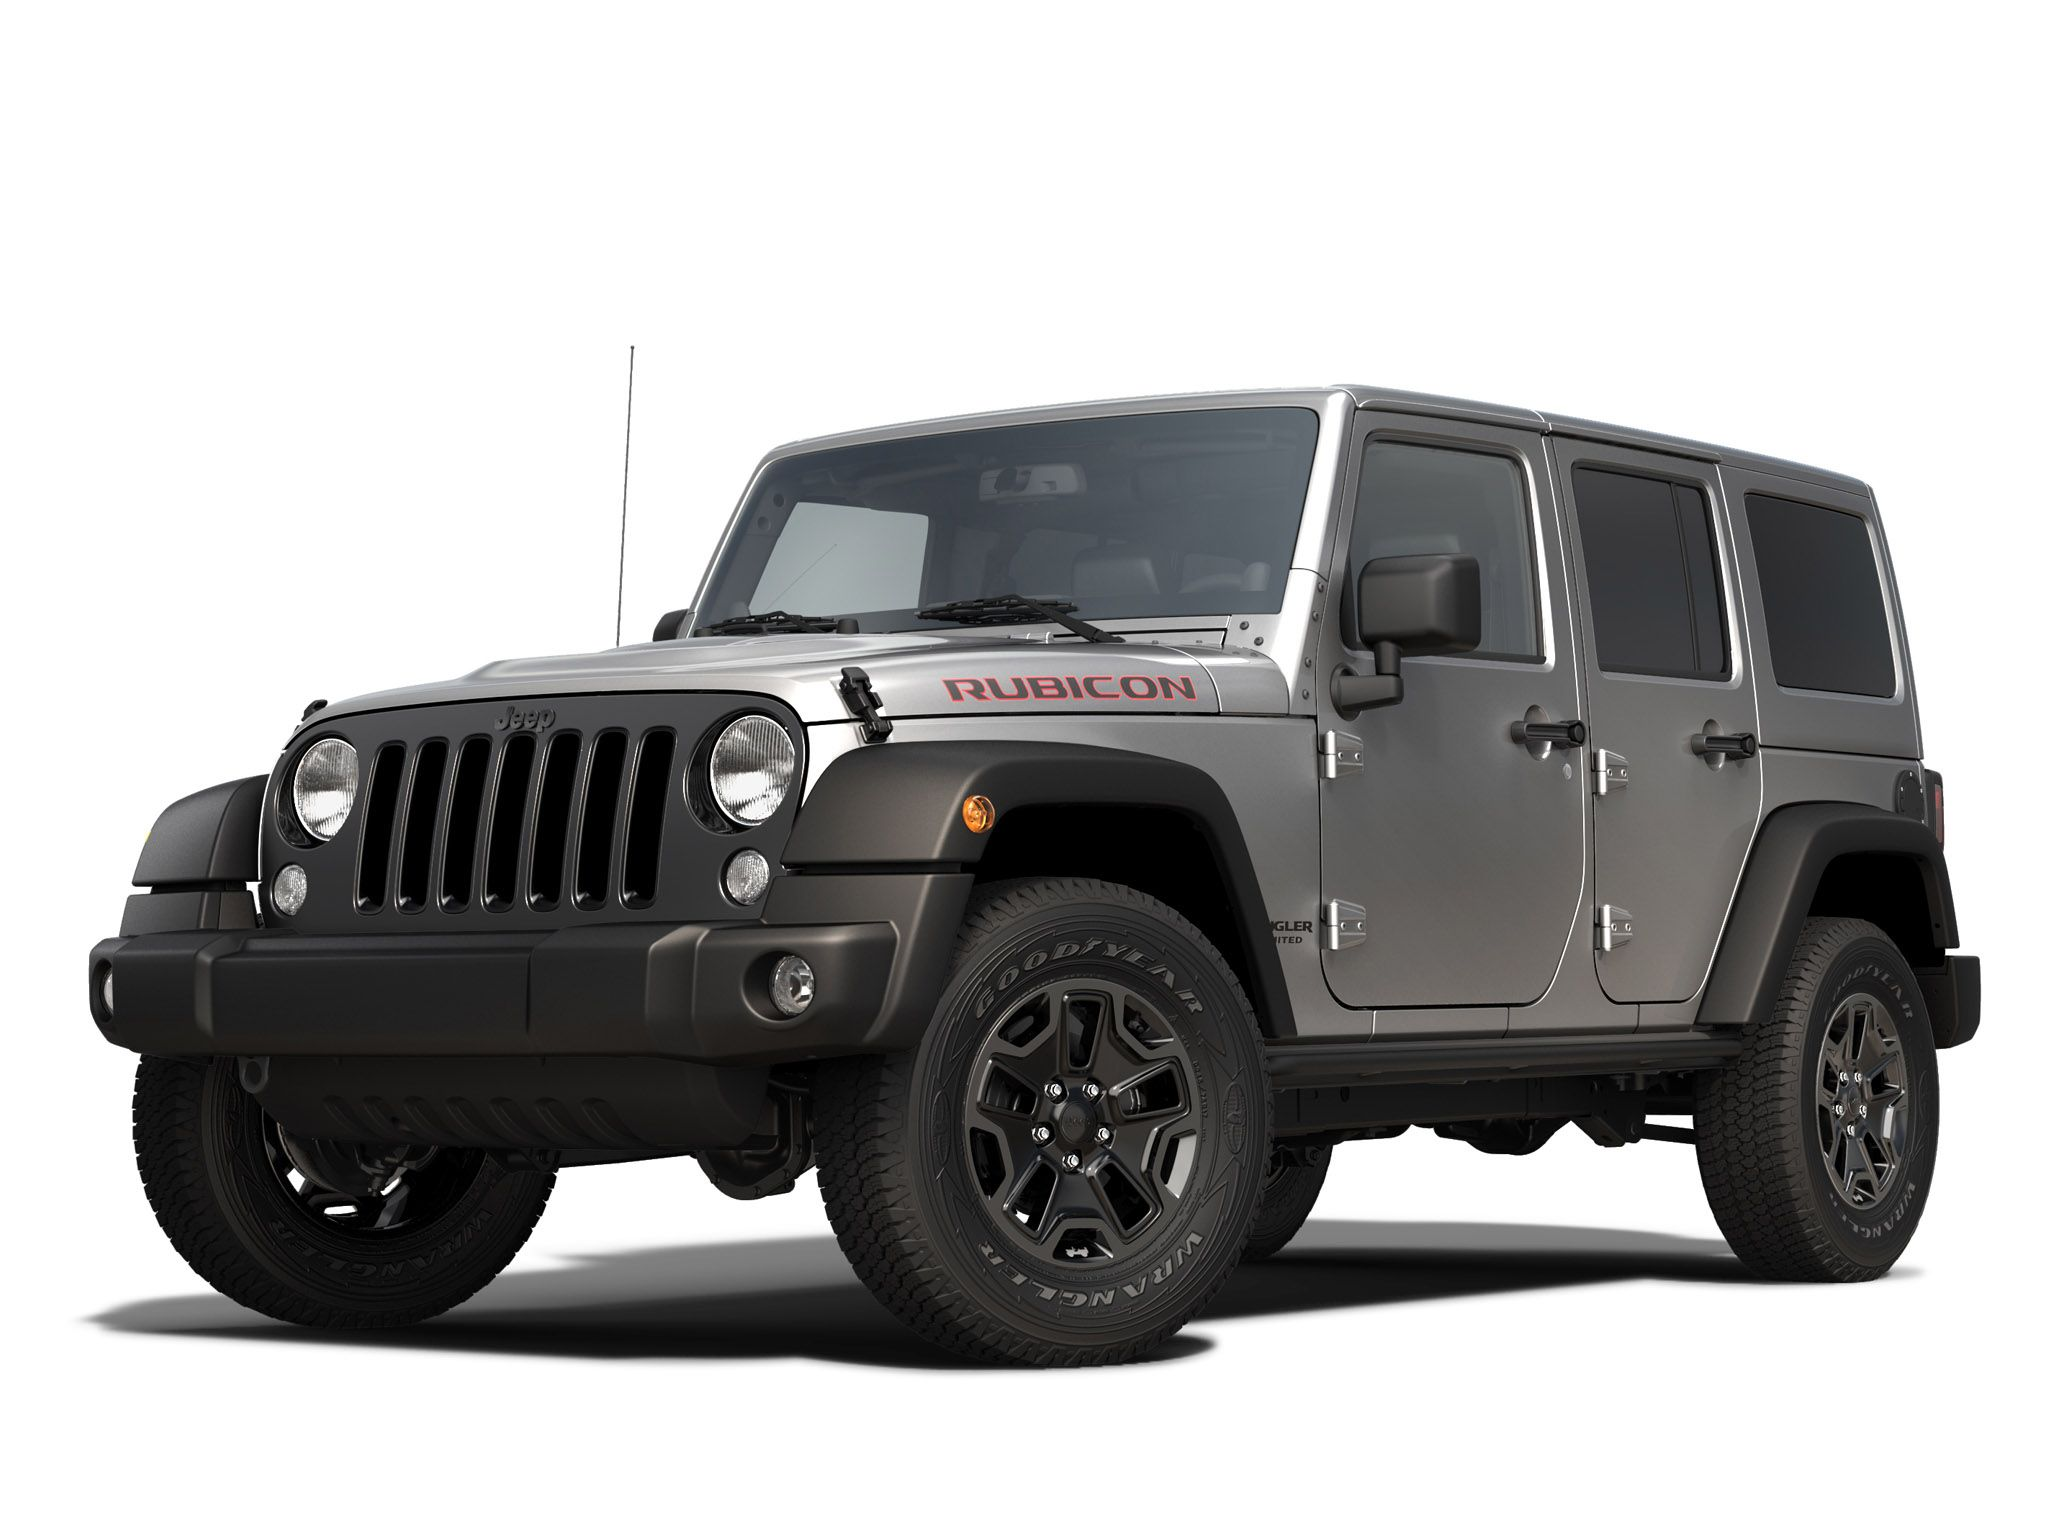 Jeep wrangler rubicon jeep wrangler rubicon welcome to amazing pictures of cars a lot